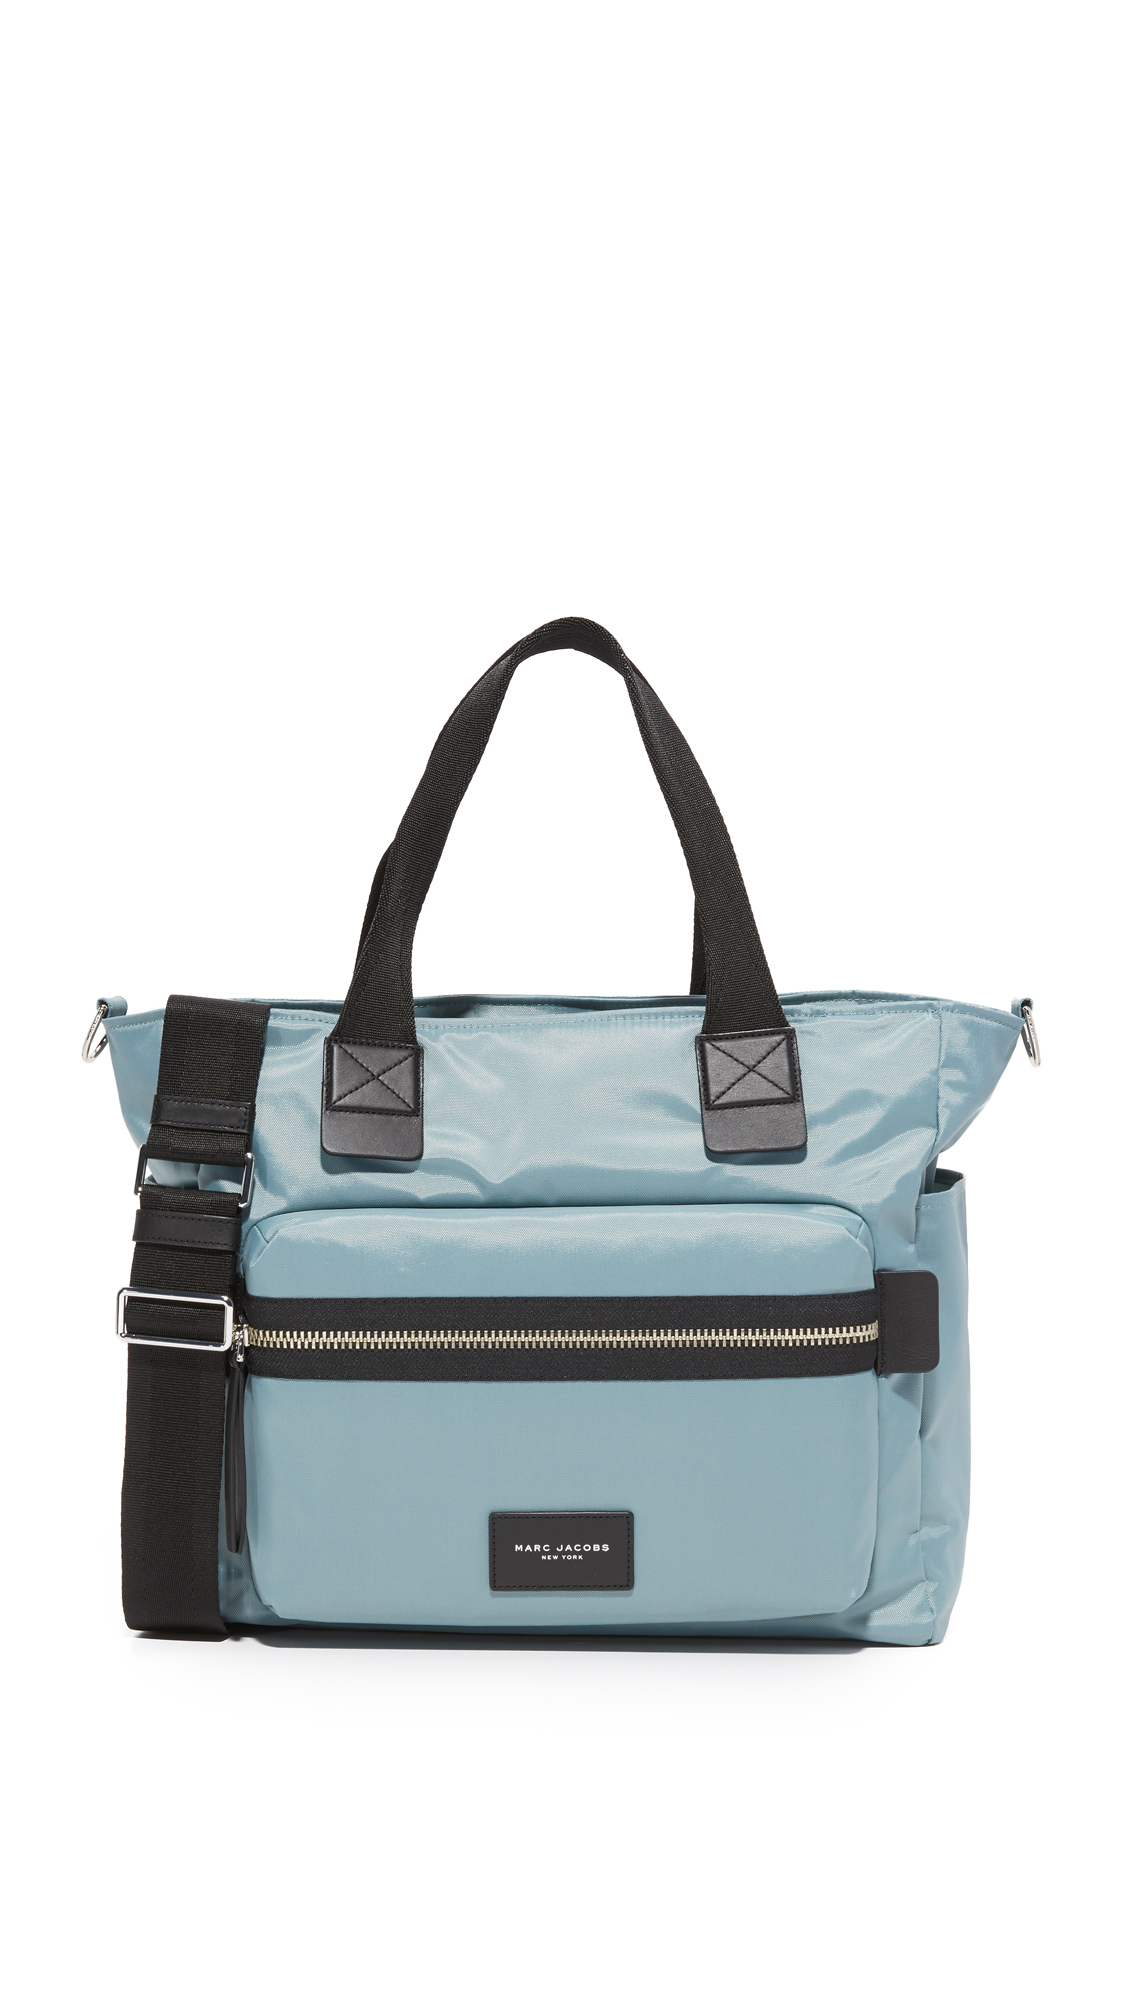 marc jacobs female 201920 marc jacobs nylon biker baby bag dolphin blue